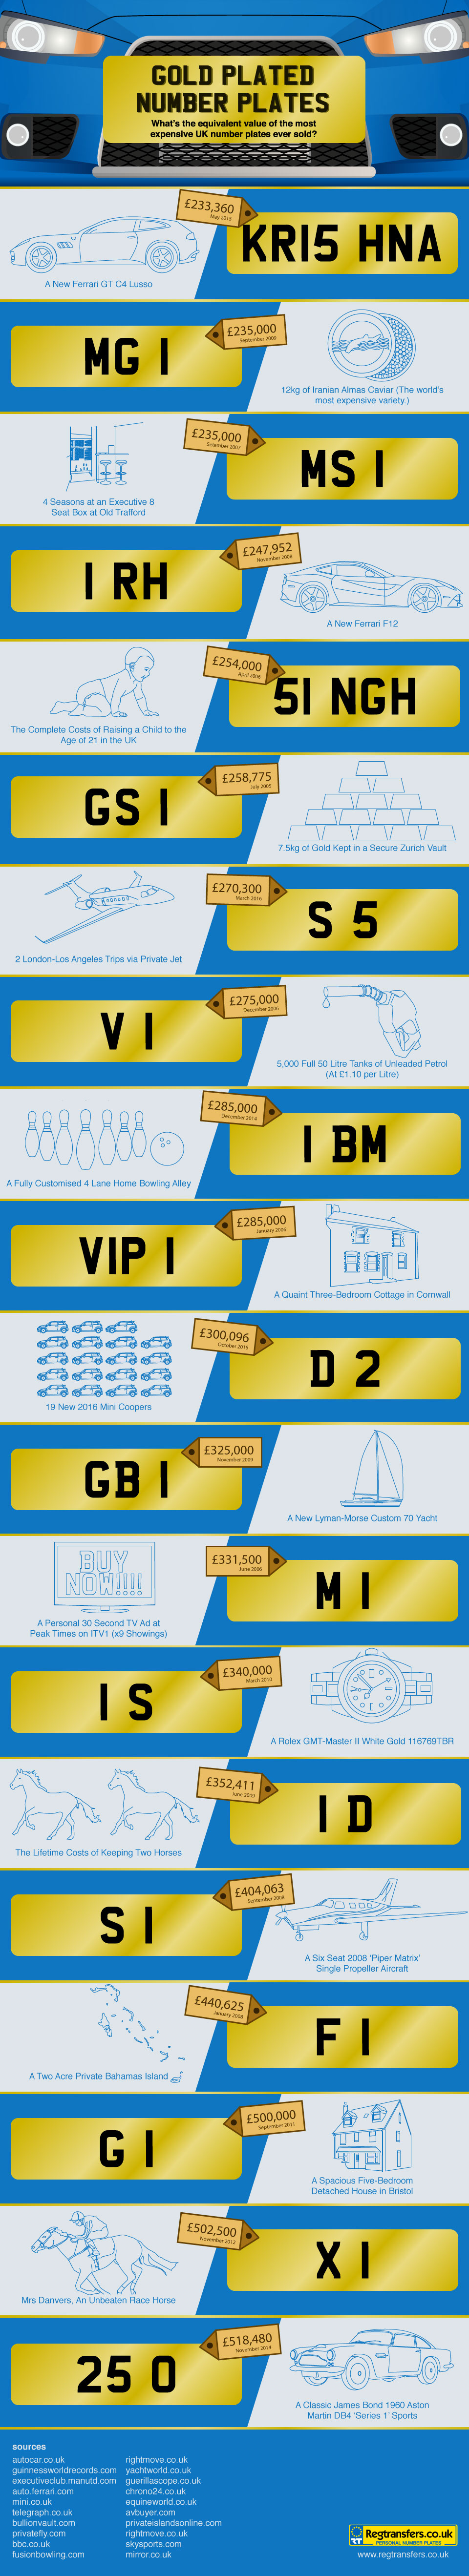 Gold Plated Number Plates by Driving.co.uk